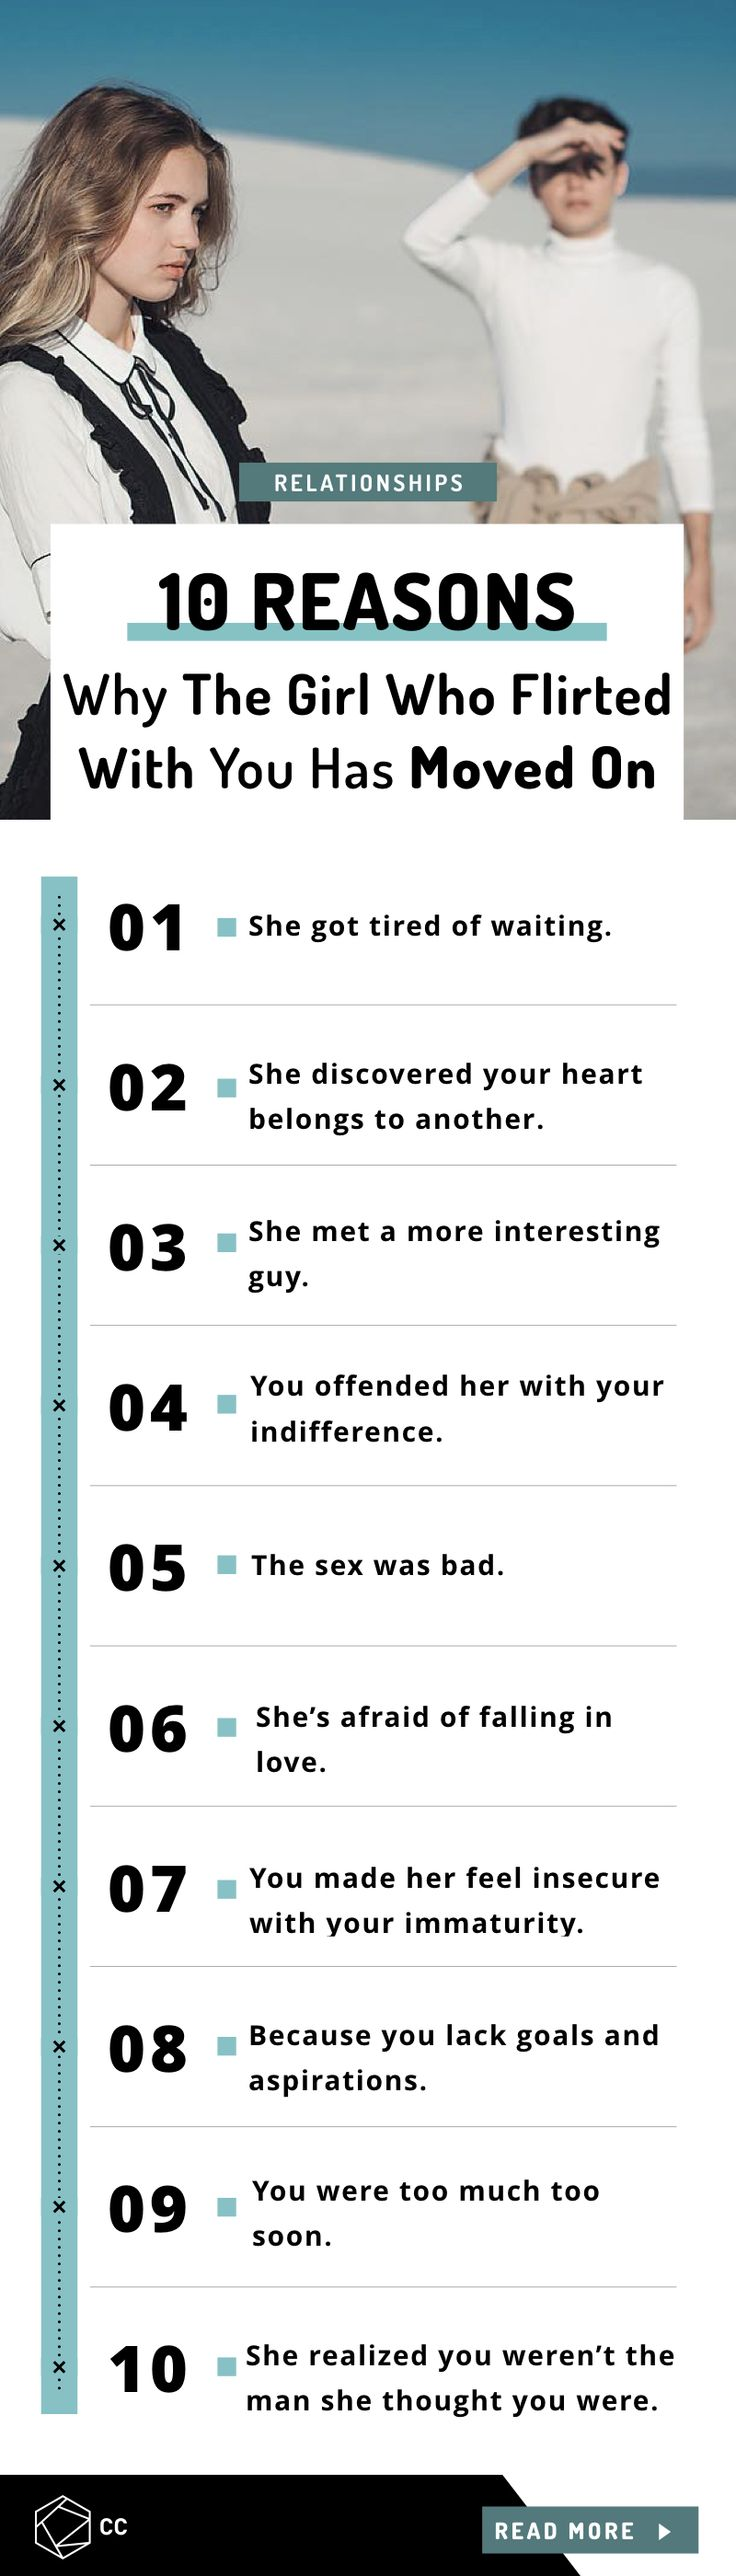 10 Reasons Why The Girl Who Flirted With You Has Moved On.   Relationship advice for guys.